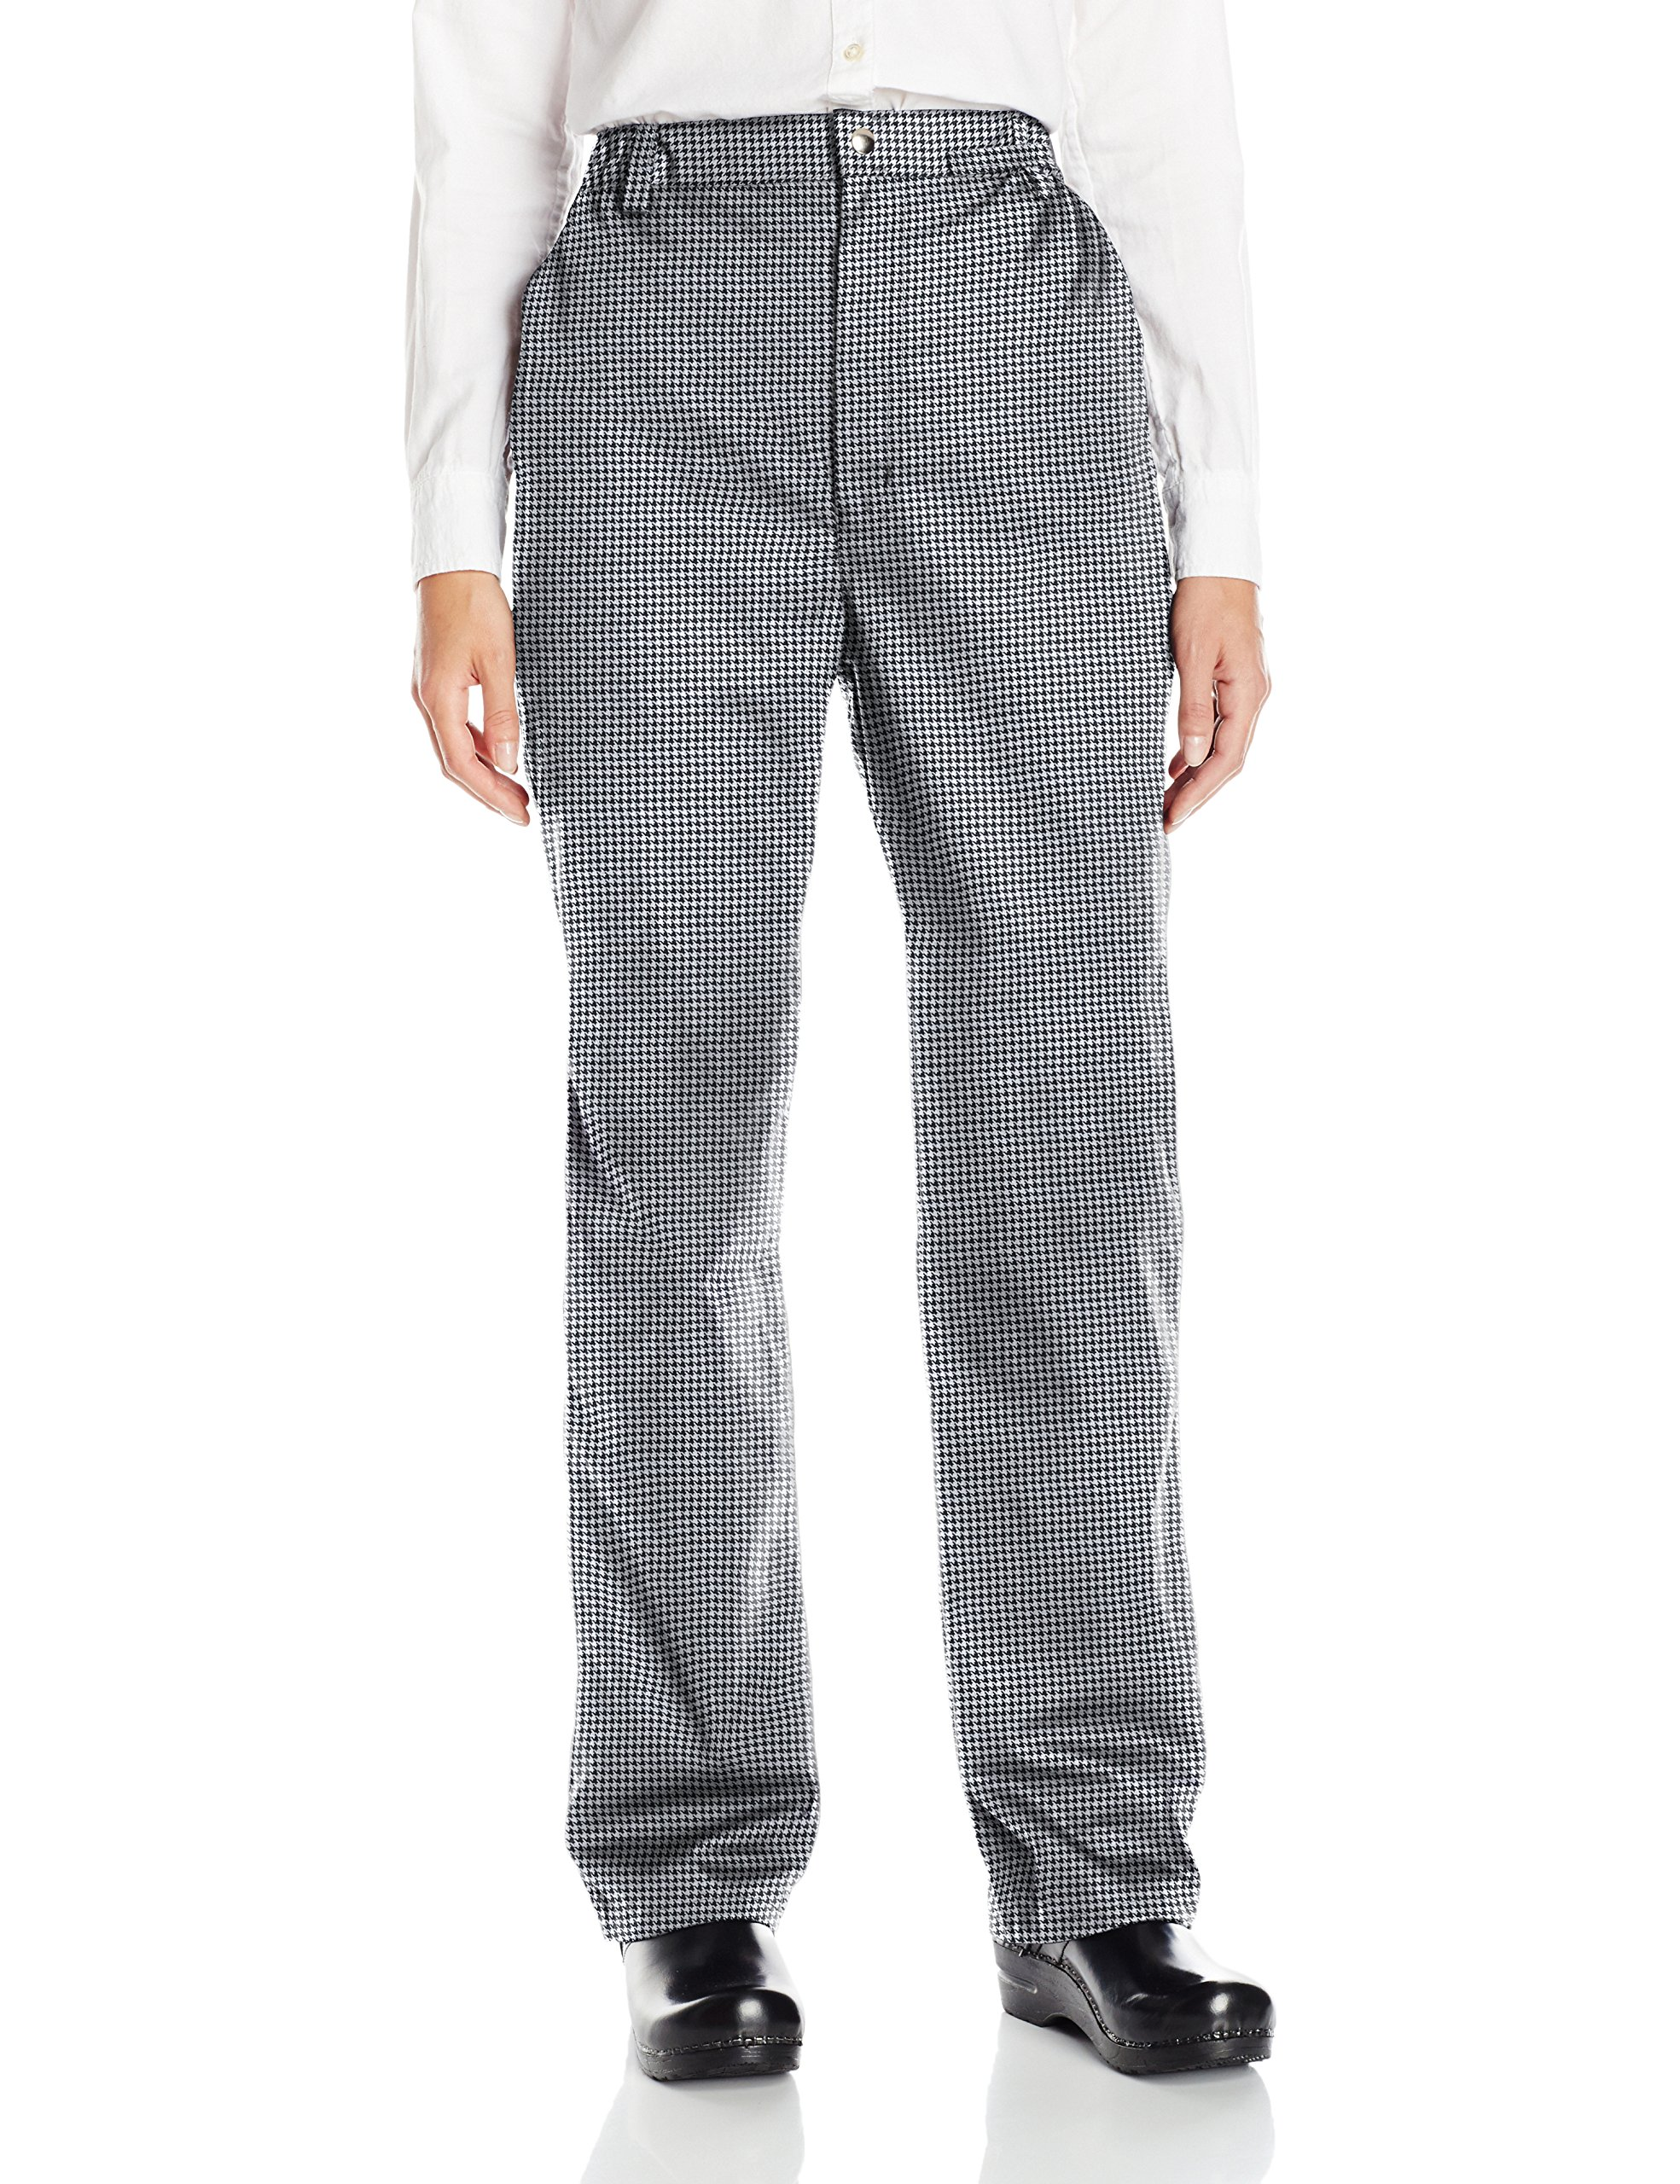 Uncommon Threads Unisex Executive Chef Pant, Houndstooth, X-Large